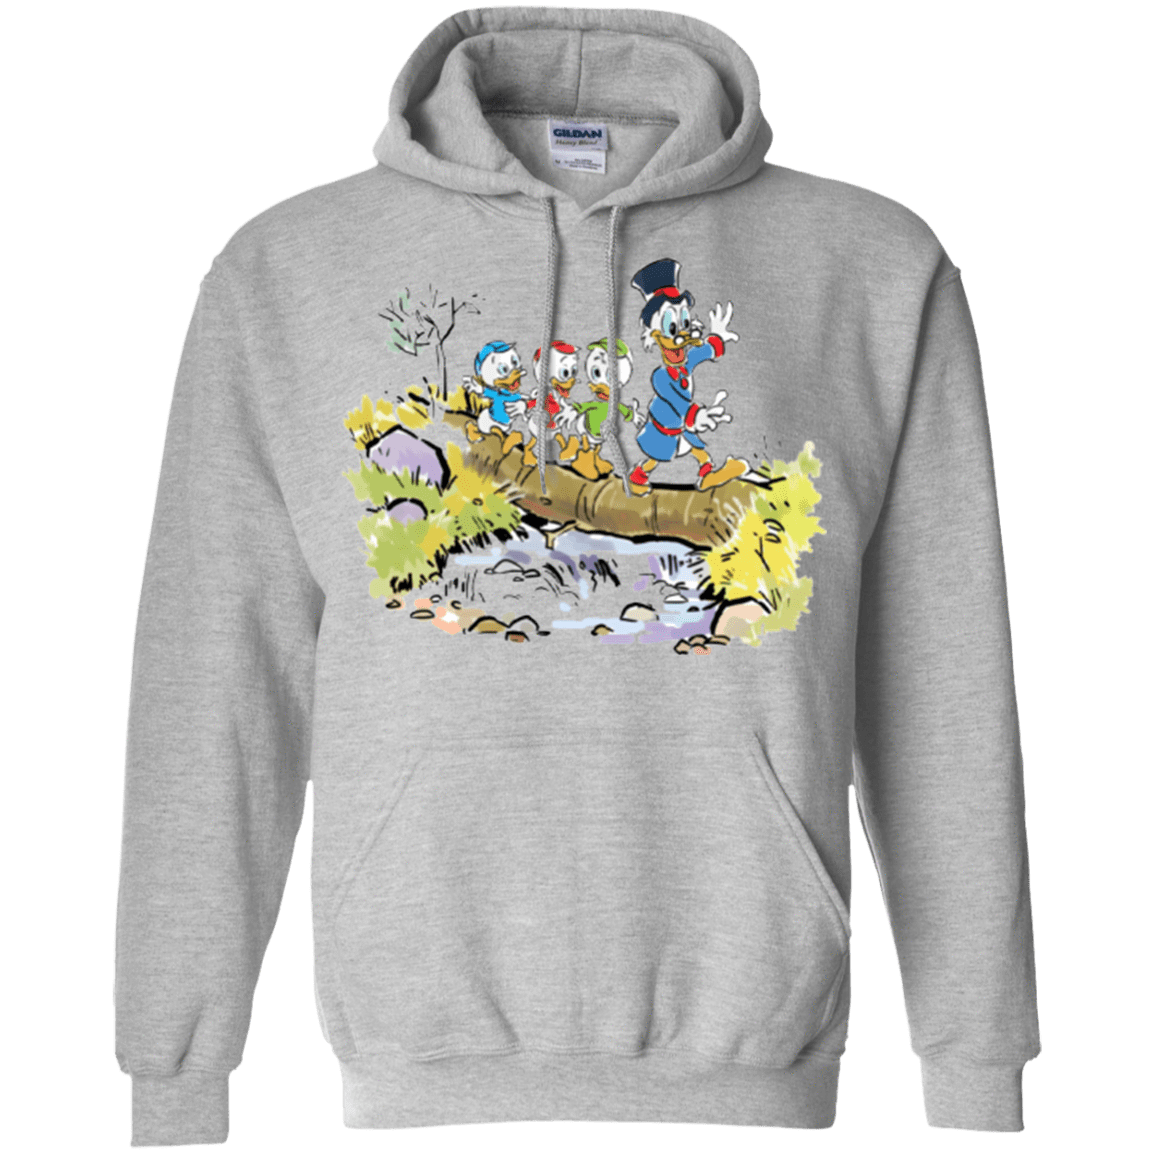 Sweatshirts Sport Grey / Small Looking for Adventure Pullover Hoodie